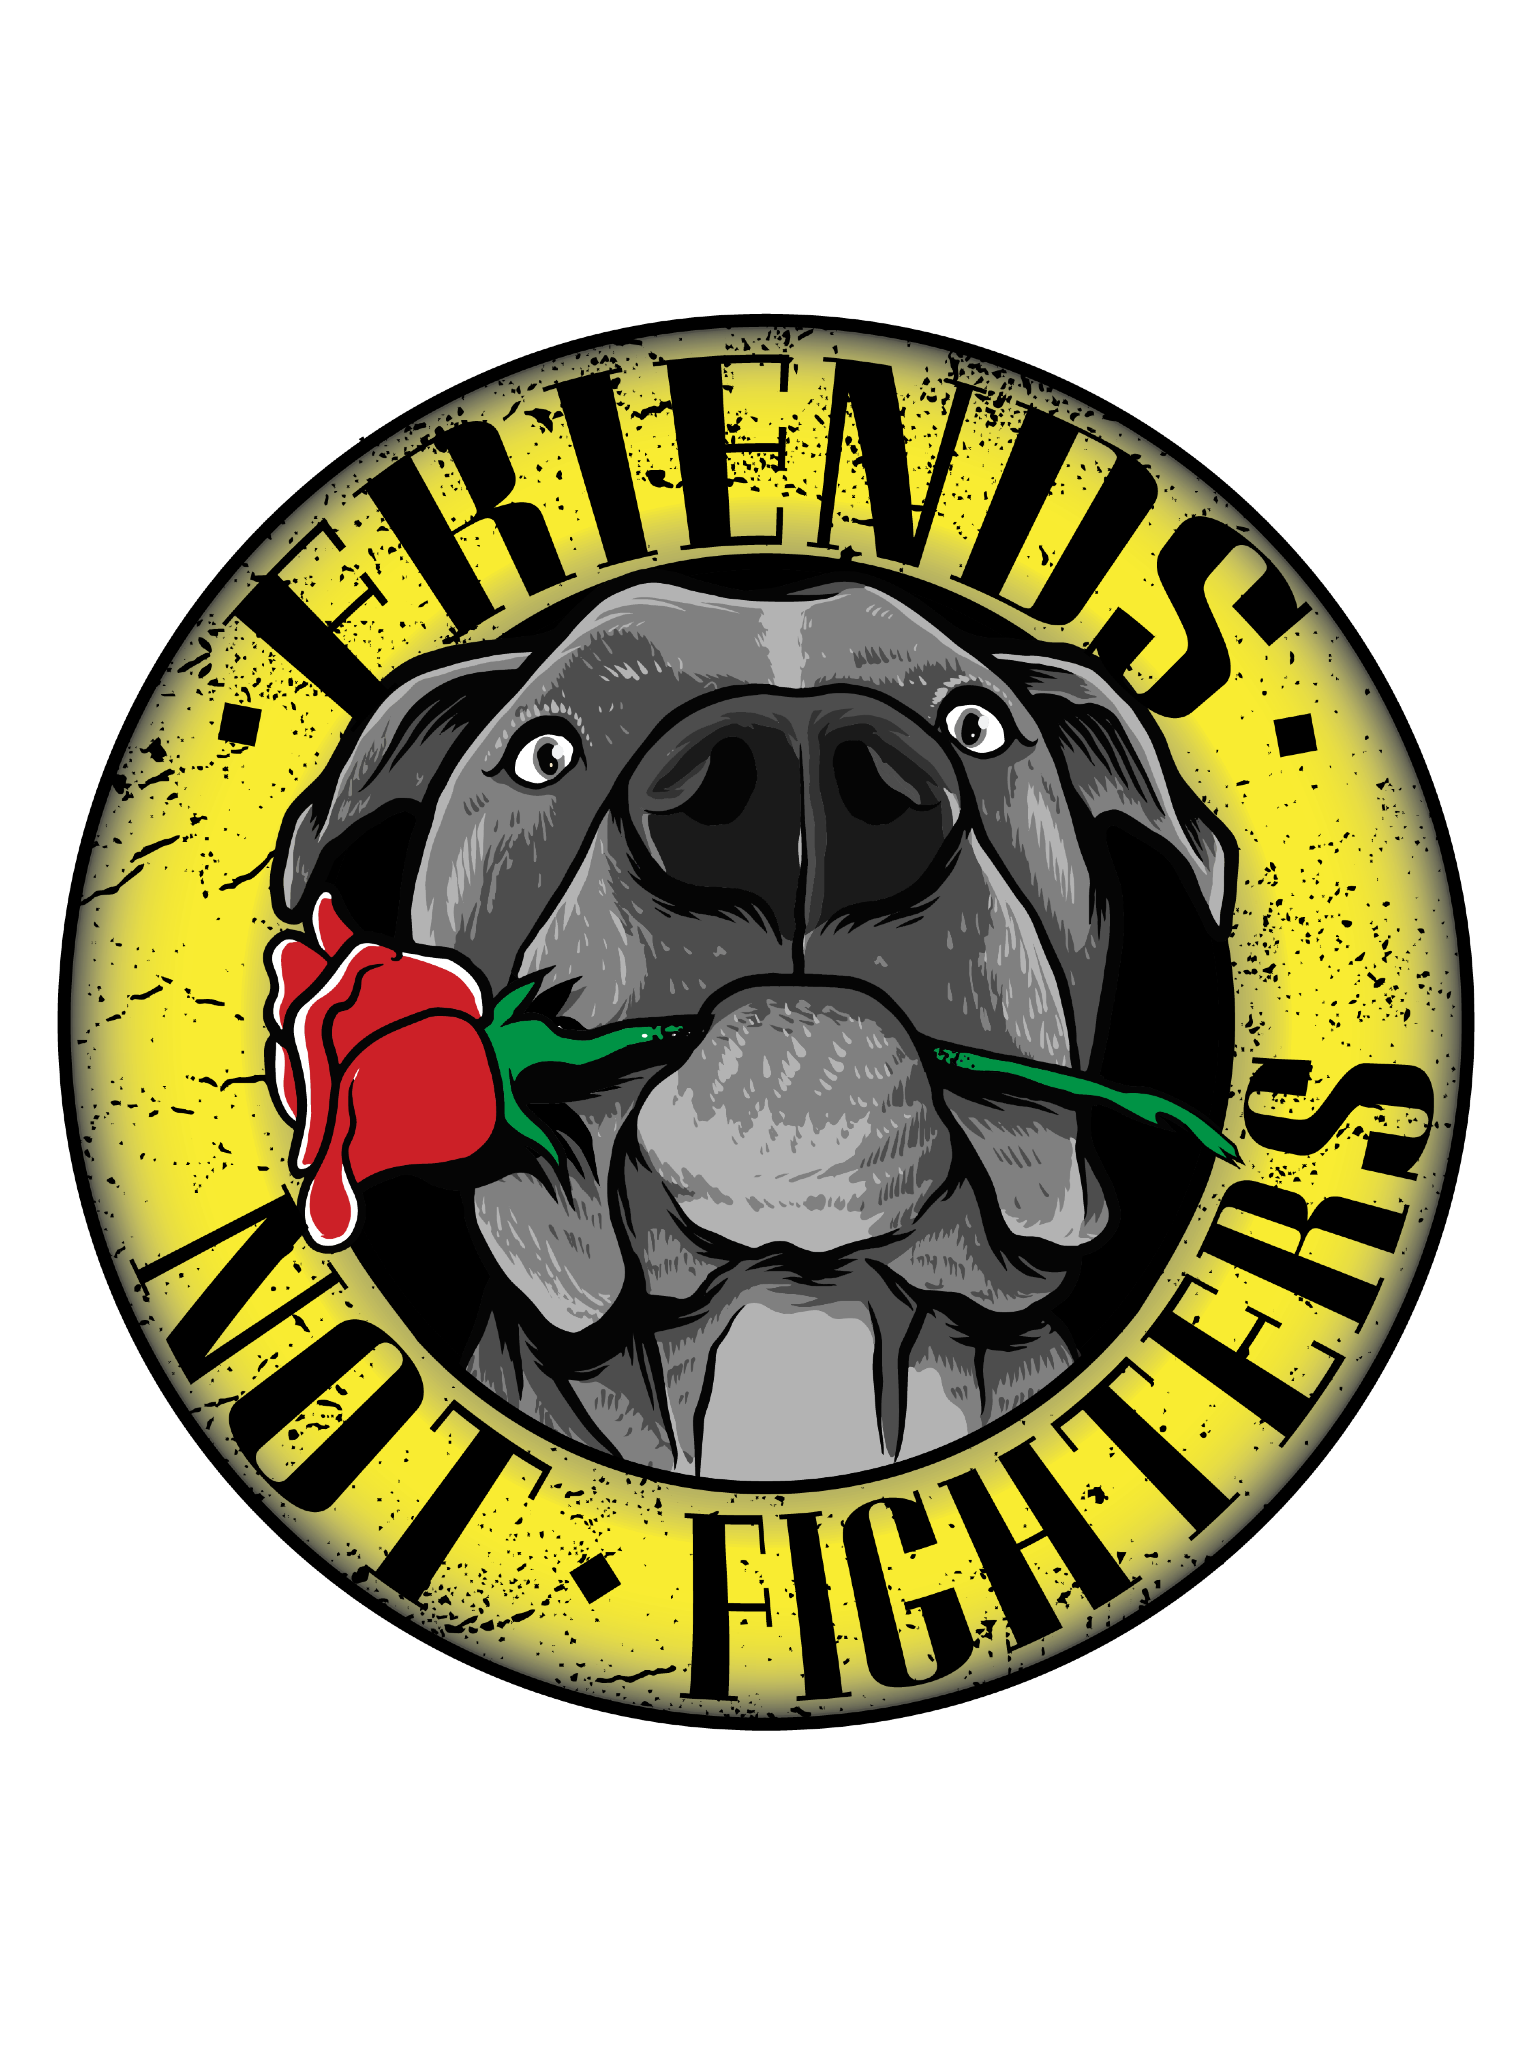 FRIENDS NOT FIGHTERS